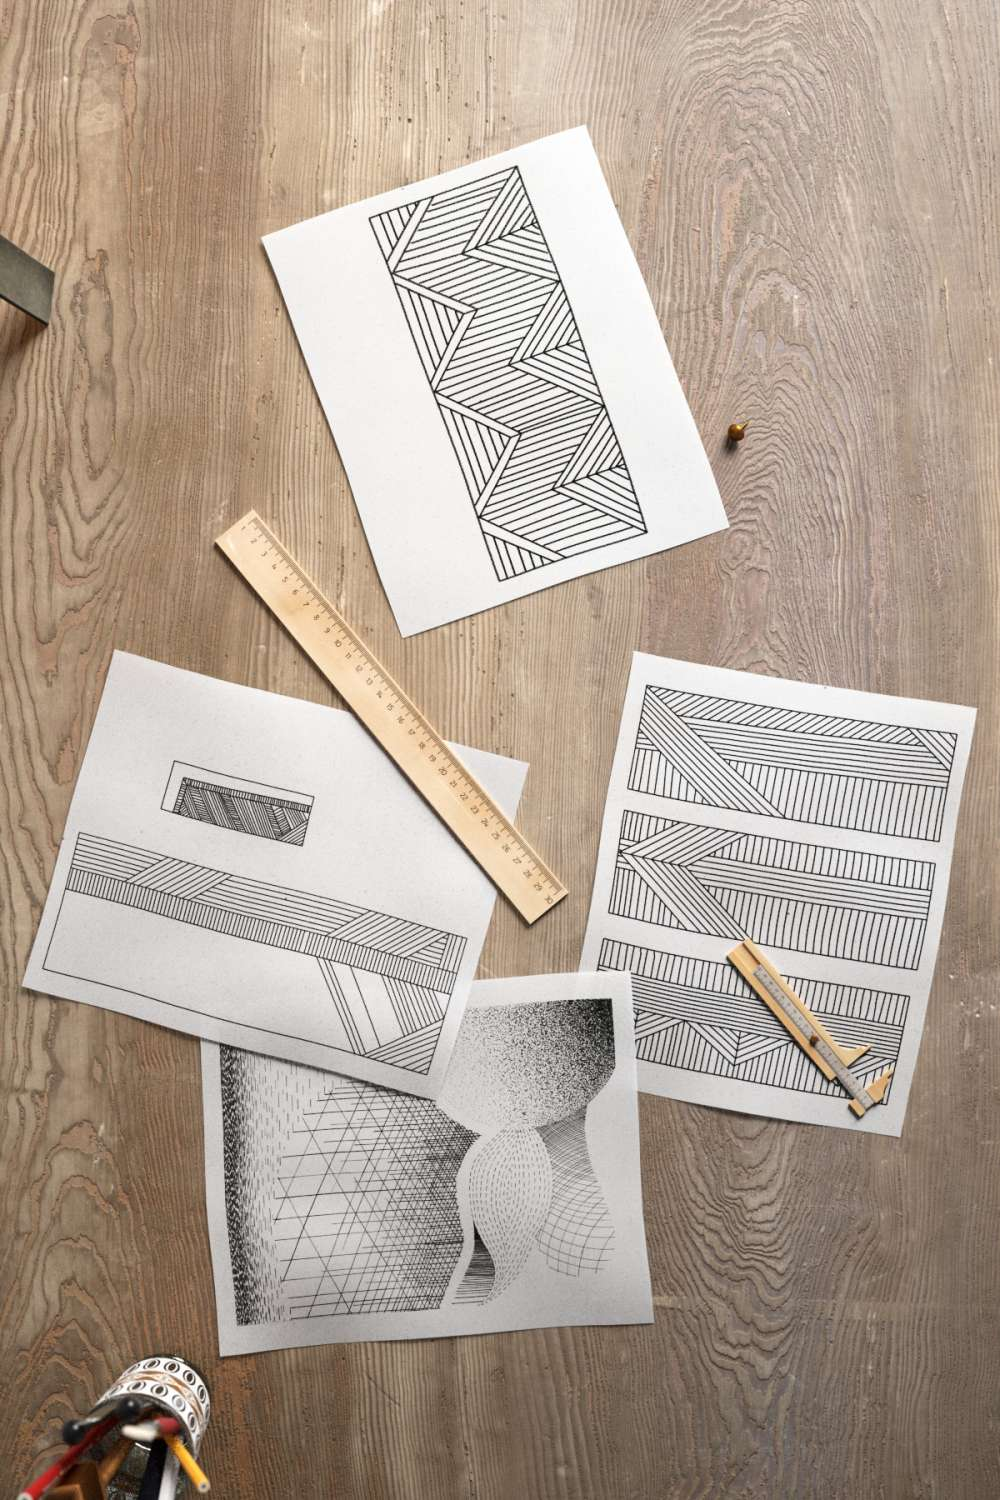 Handicraft Tools Papers And Wall Lamp